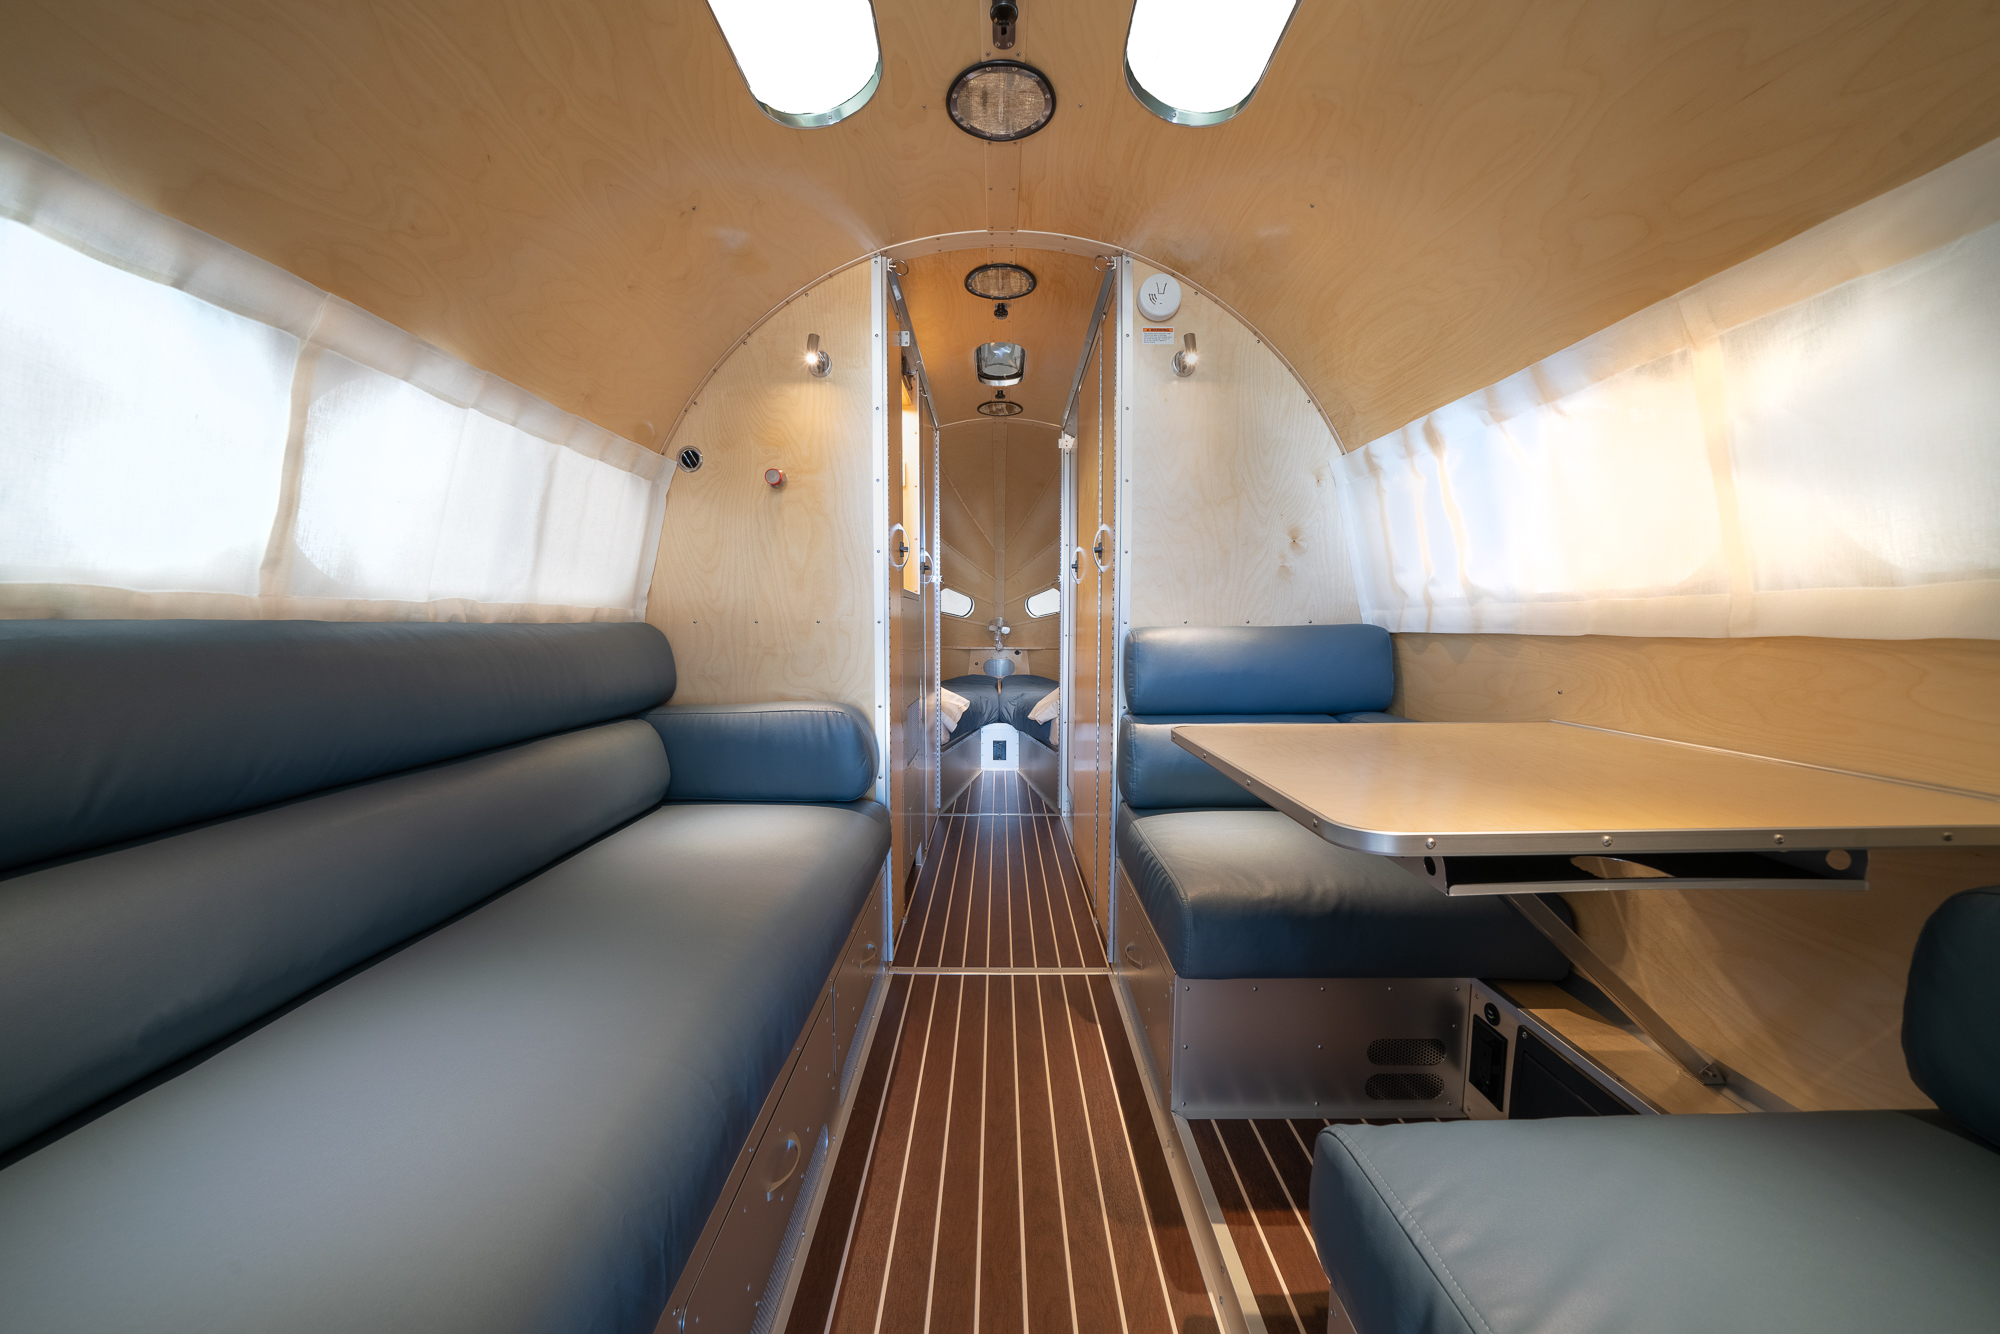 Quality RVs: Going Beyond the Industry Standard